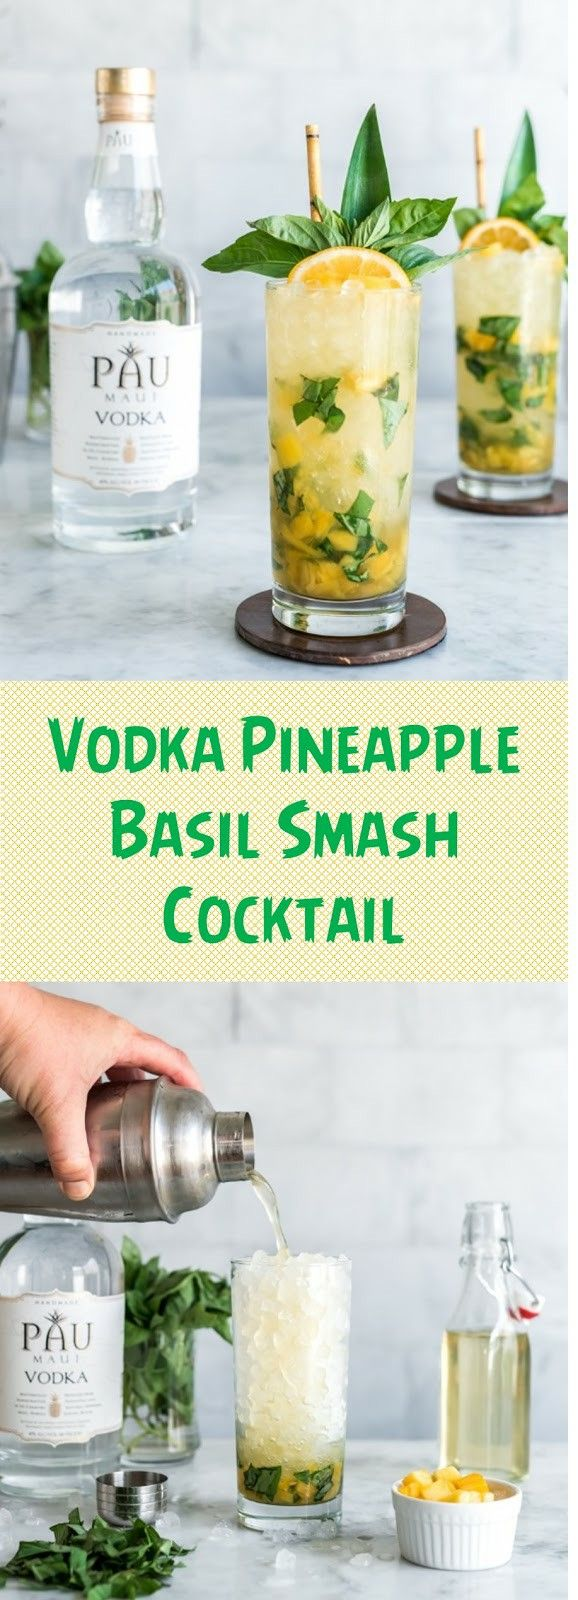 Vodka Pineapple Basil Smash Cocktail Pineapple Vodka Pineapple Cocktail Recipes Vodka Cocktails Easy